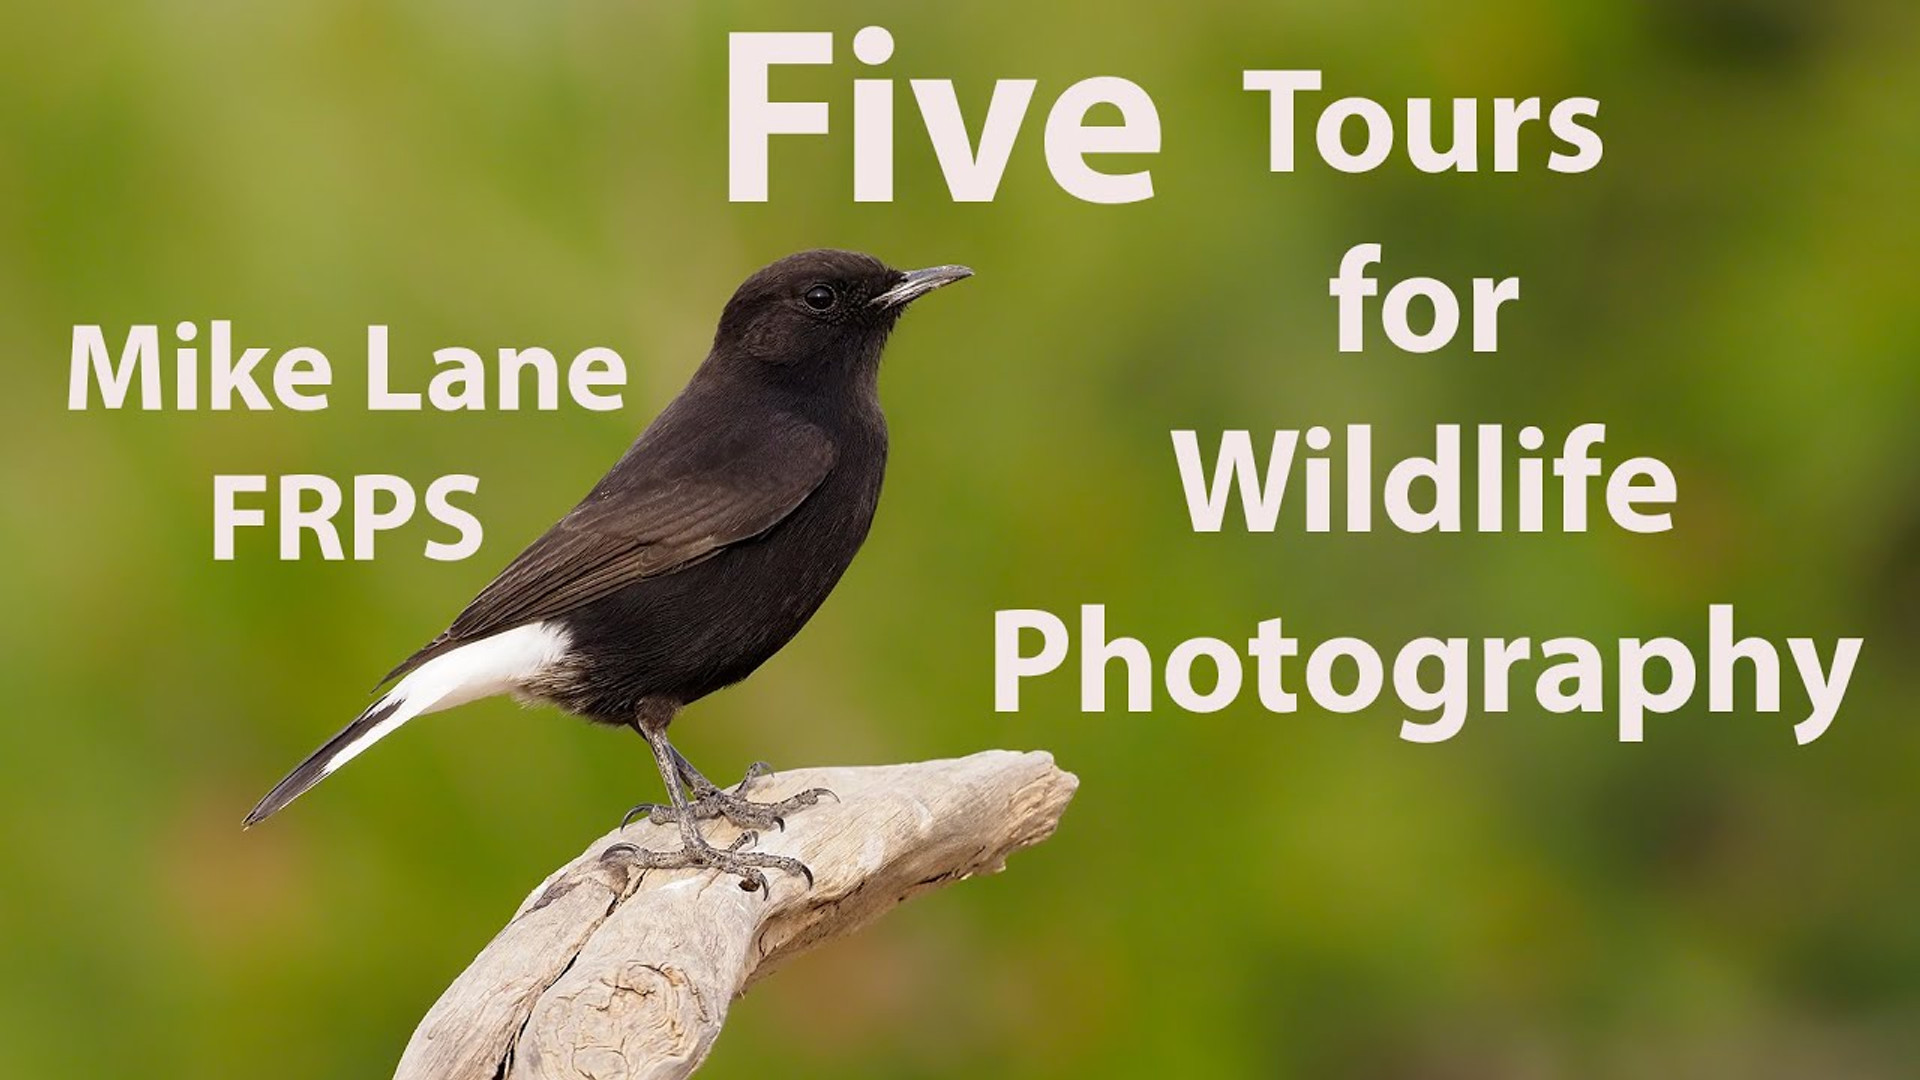 Five Tours for Wildlife Photography